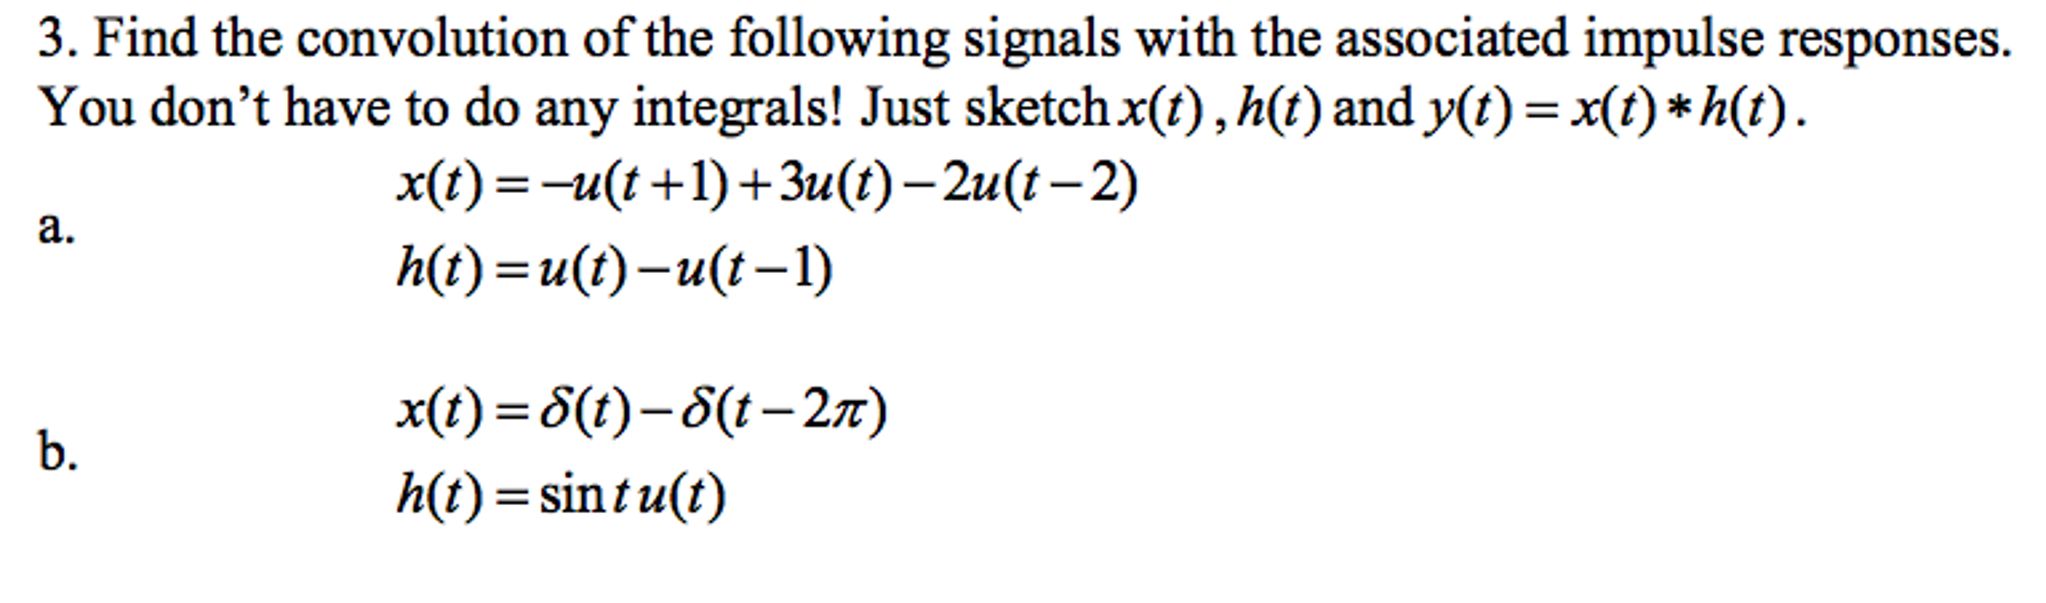 electrical engineering archive 09 2016 chegg com find the convolution of the following signals the associated impulse responses you don t have to do any integrals just sketch x t h t and y t